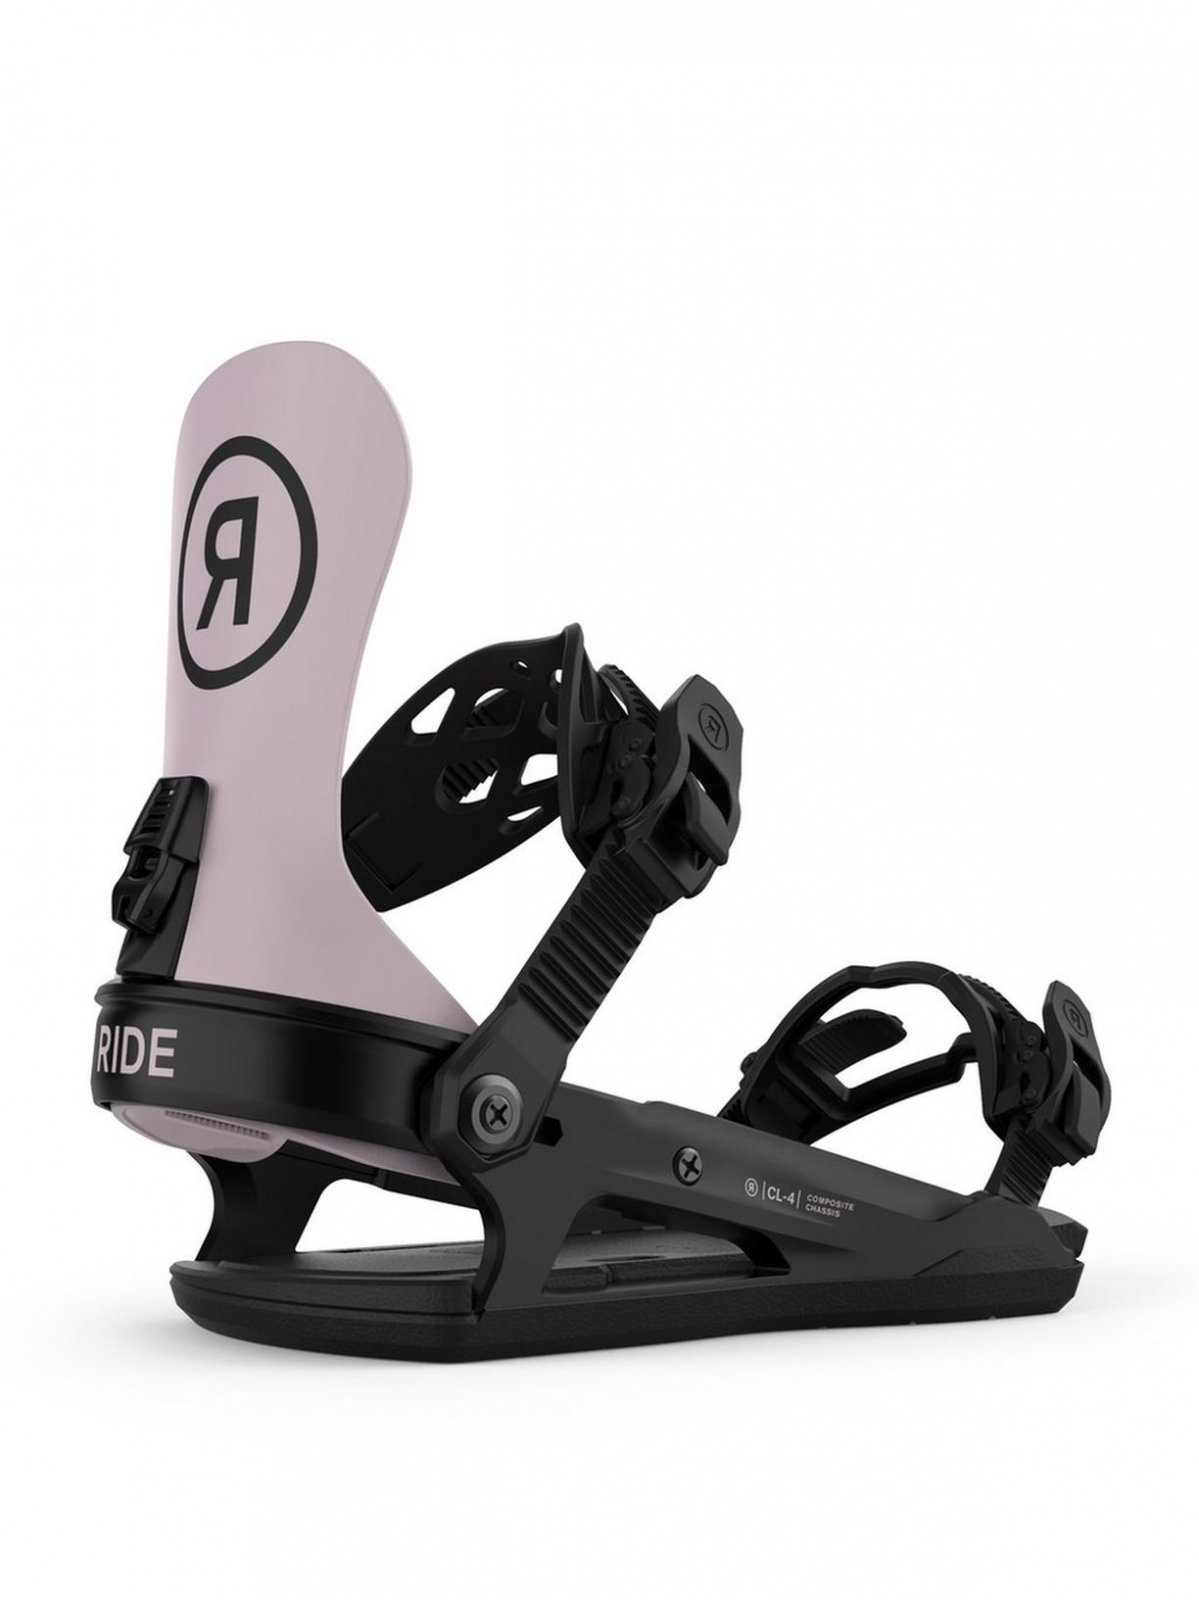 2021 Ride CL-4 Women's Snowboard Bindings